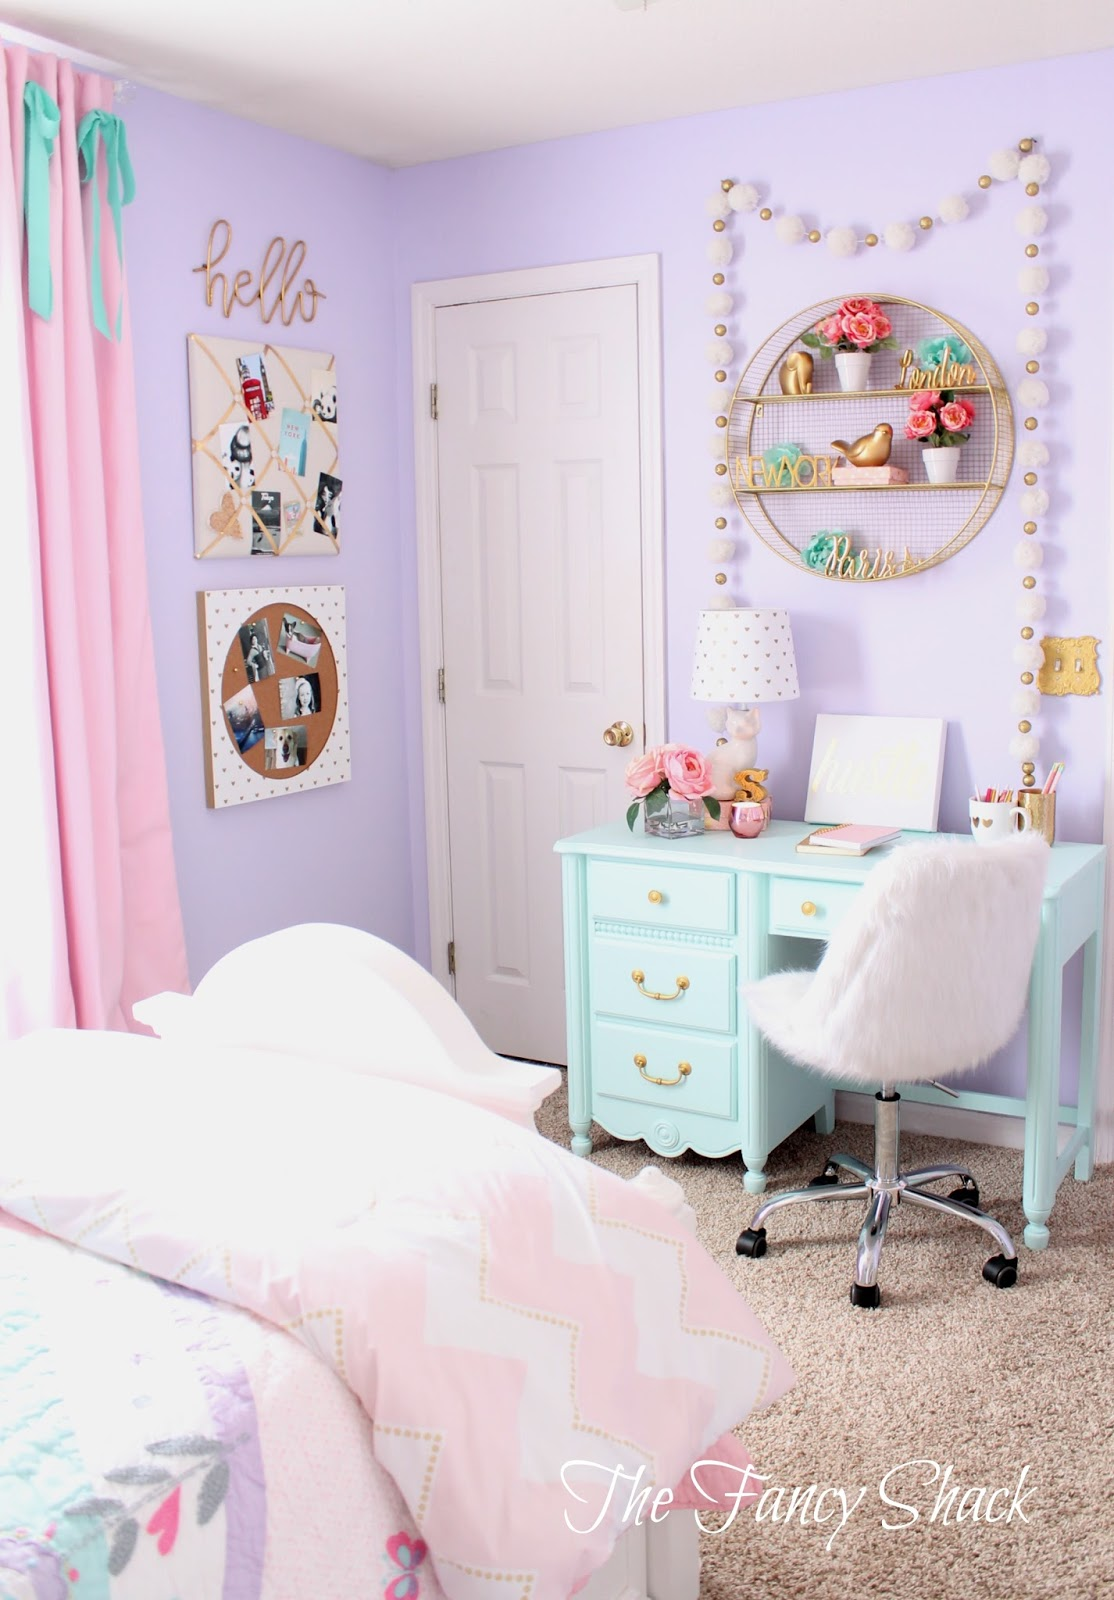 The fancy shack pastel girls room makeover - Photos of girls bedroom ...